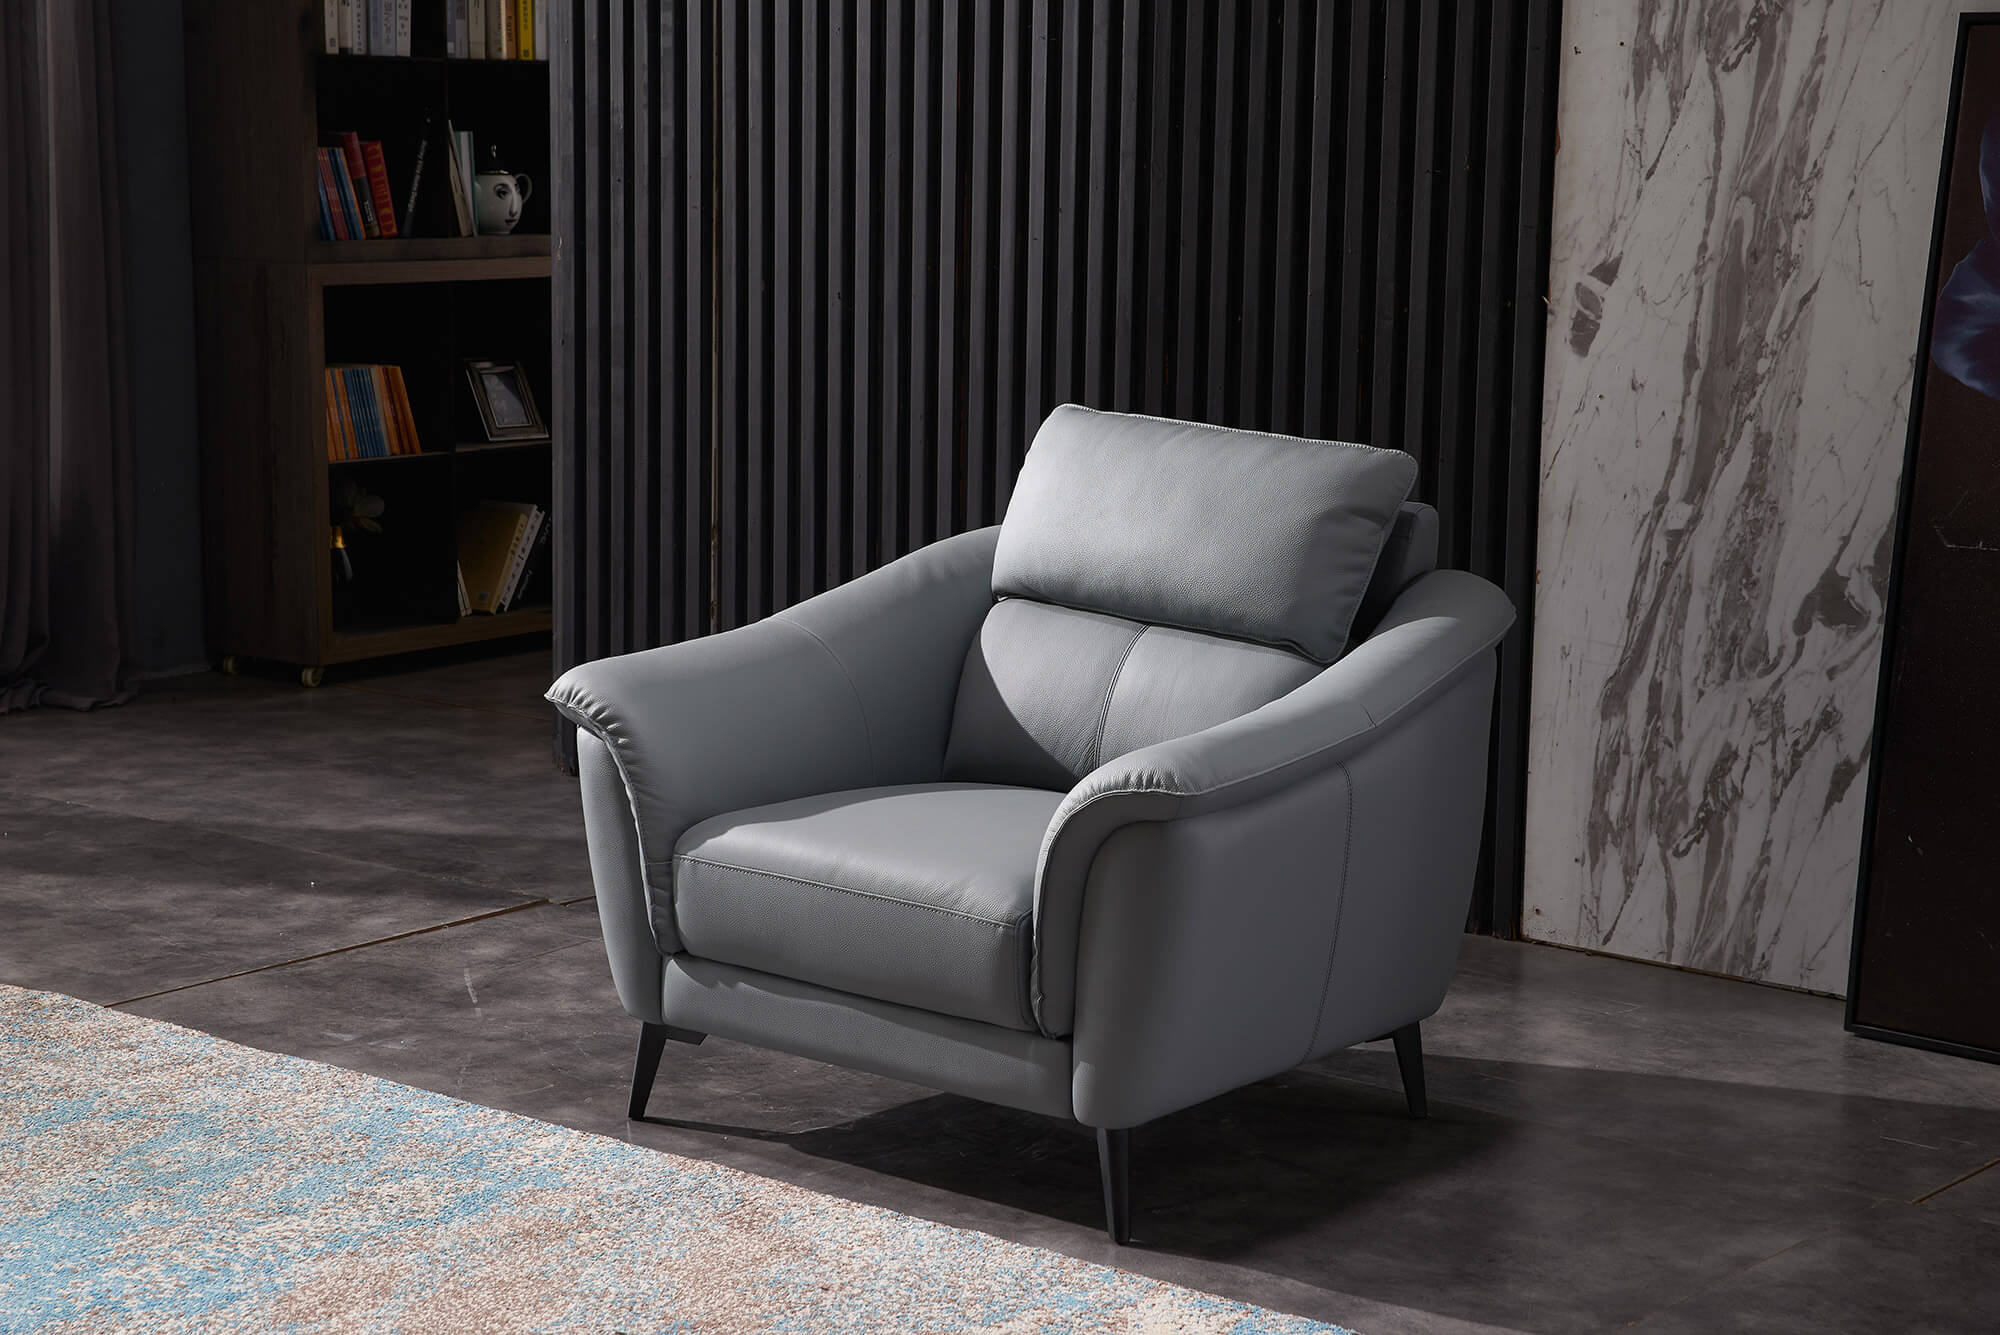 steel grey leather sofa armchair